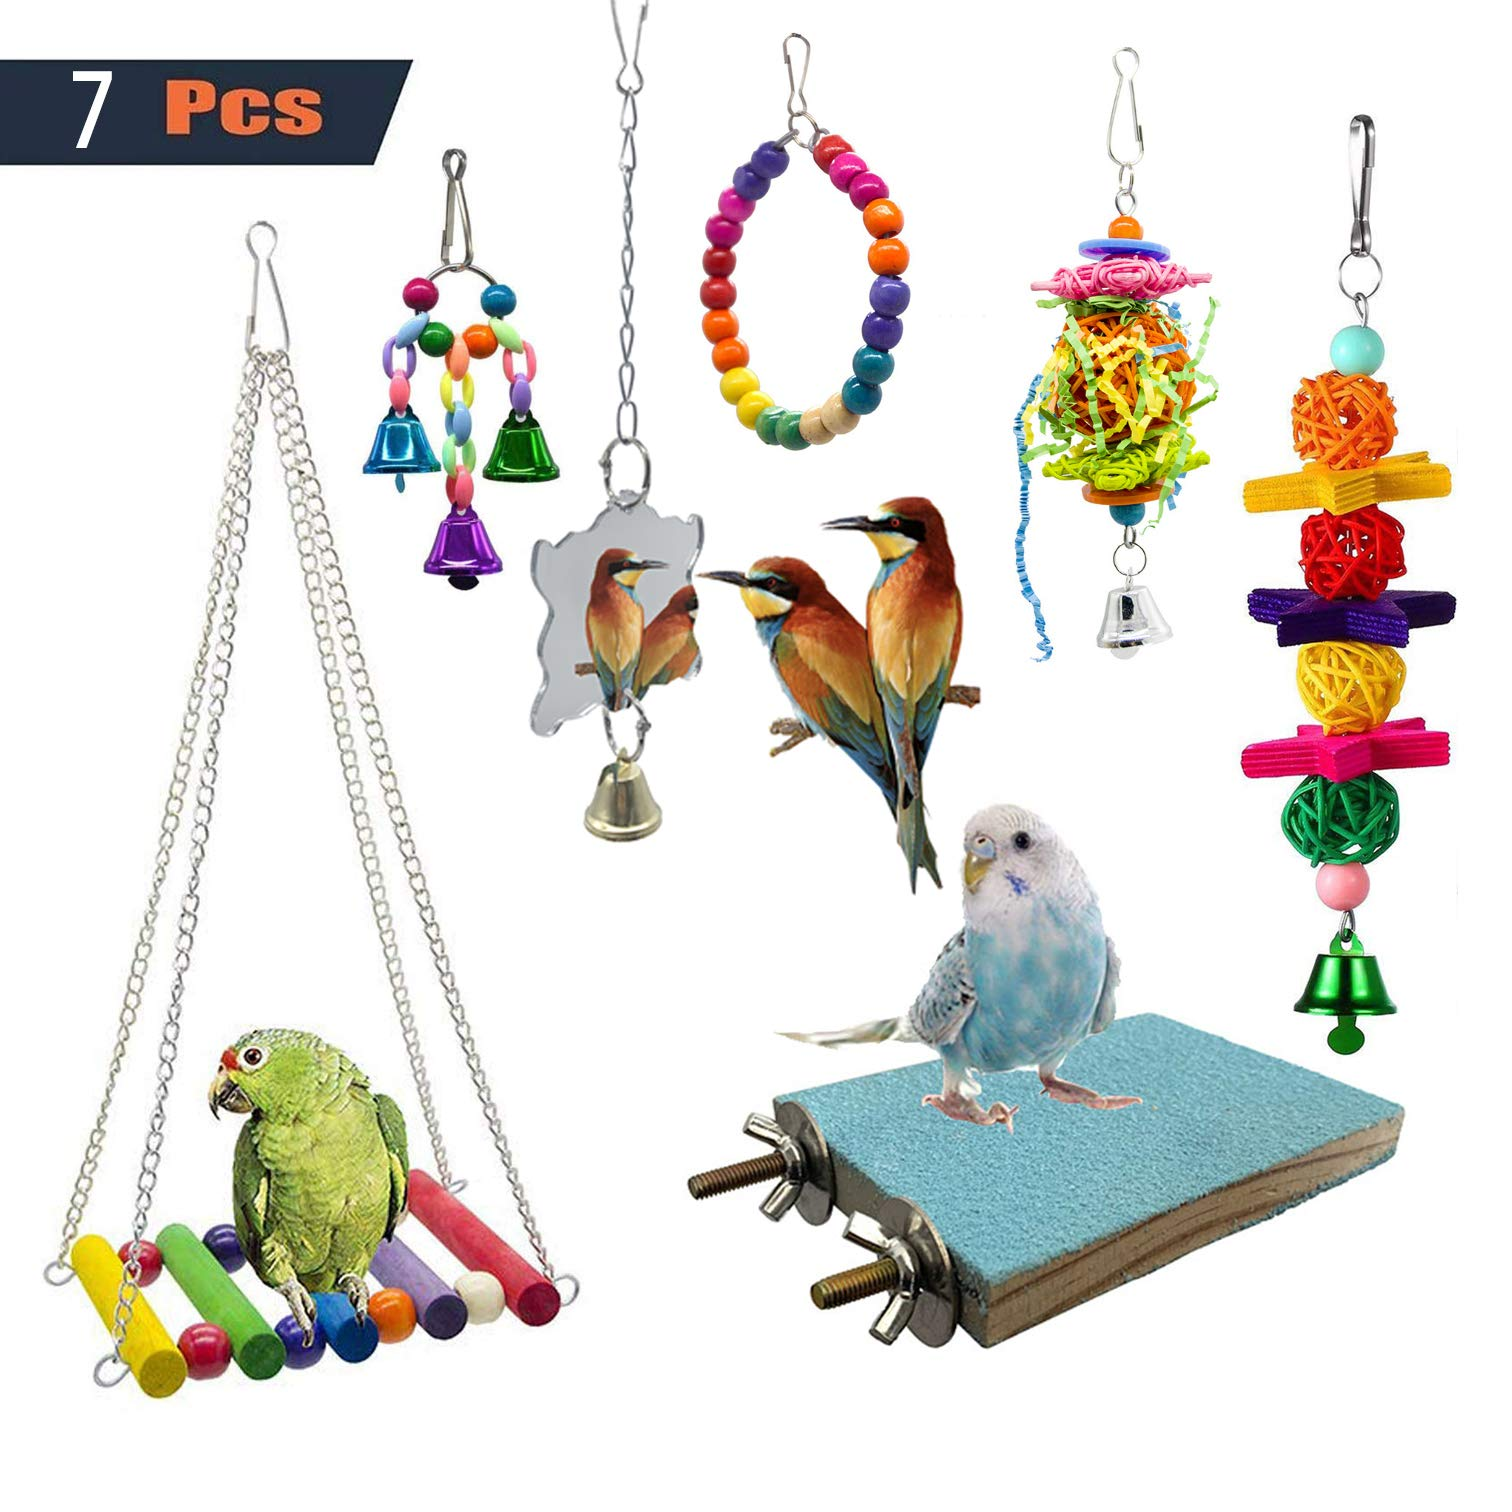 SHANTU 7 Packs Bird Swing Chewing Toys- Parrot Hammock Bell Toys Suitable for Small Parakeets, Cockatiels, Conures…